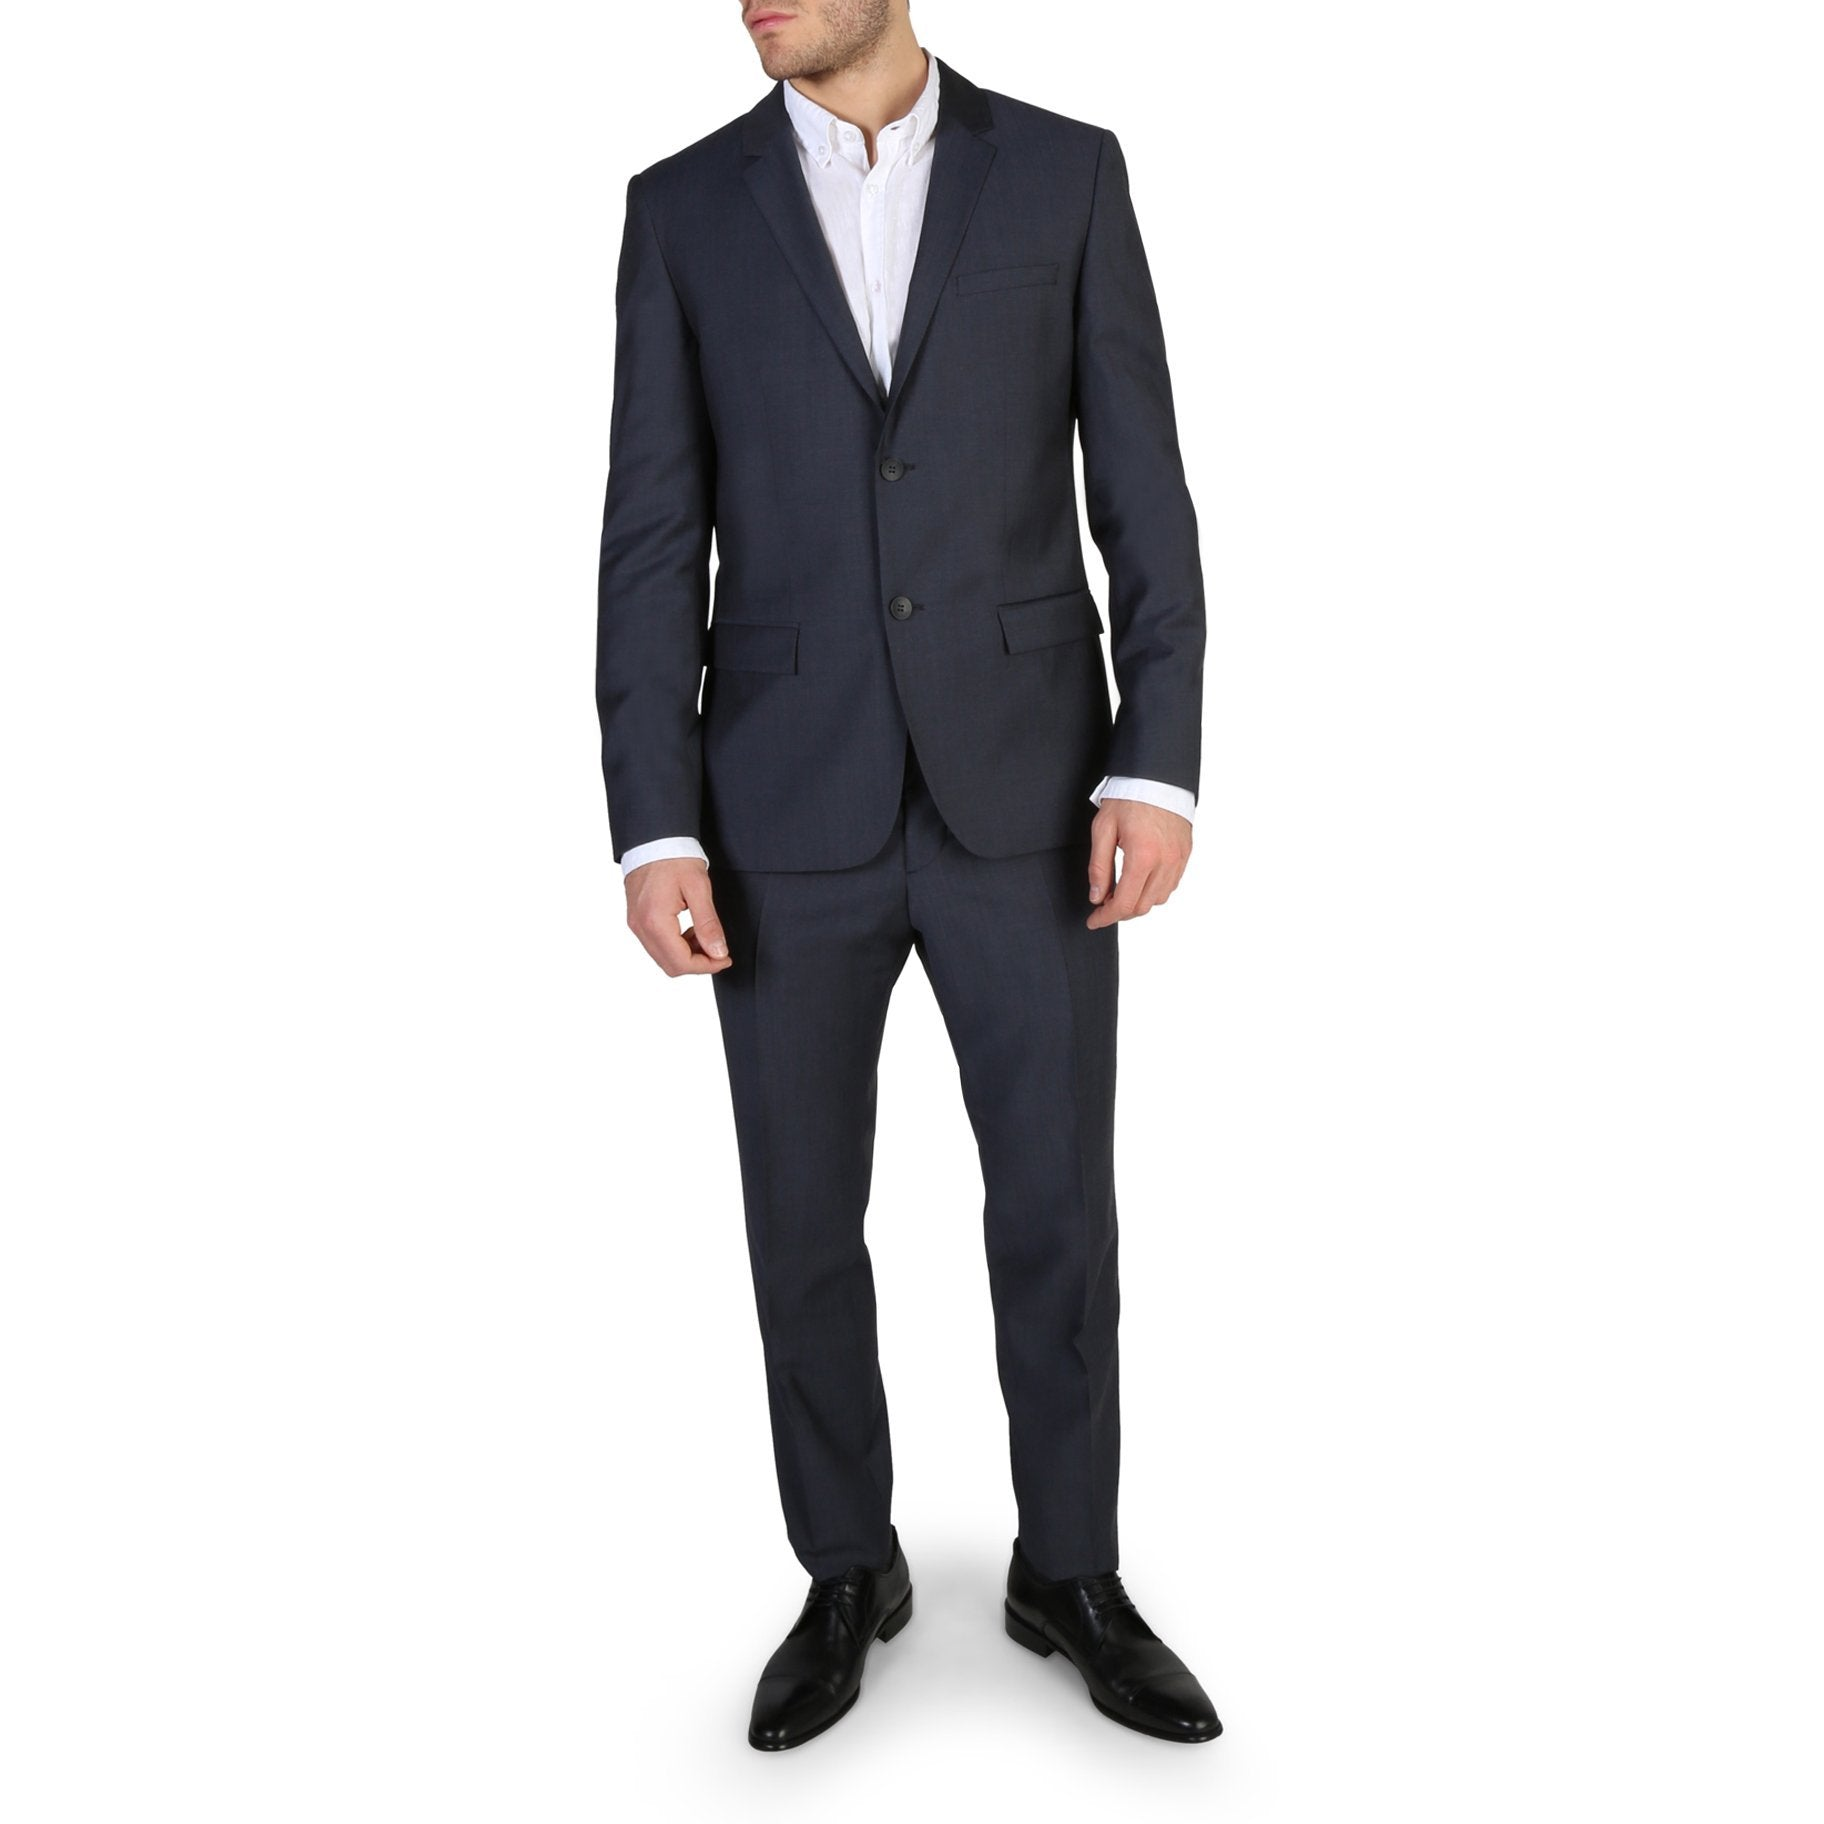 His Suits 50 Calvin Klein - KIEK_101786_478 8718933587834 BRD298369